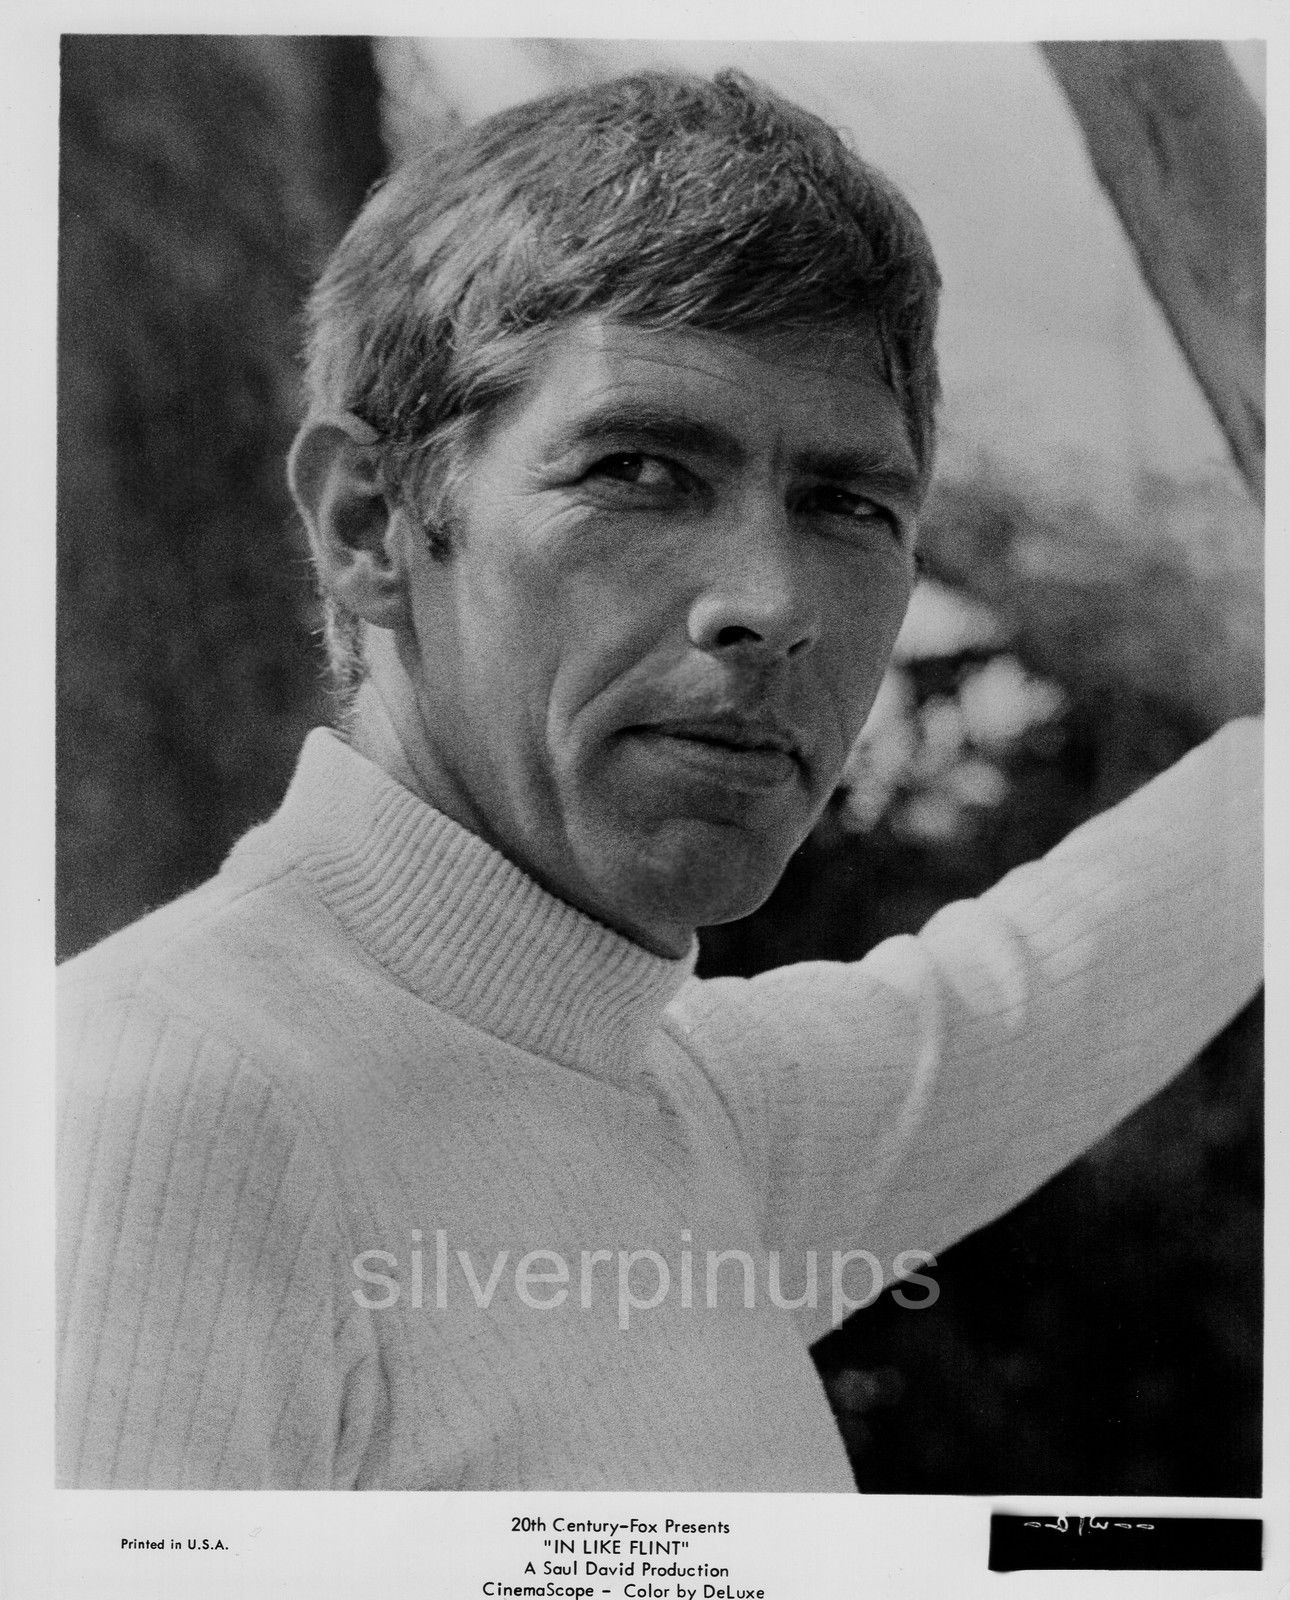 james coburn moviesjames coburn imdb, james coburn wiki, james coburn actor biography, james coburn, james coburn movies, james coburn hands, james coburn bruce lee, james coburn height, james coburn ferrari, james coburn oscar, james coburn magnificent seven, james coburn filmography, james coburn biography, james coburn wife, james coburn son, james coburn death, james coburn actor, james coburn net worth, james coburn films, james coburn wikipedia